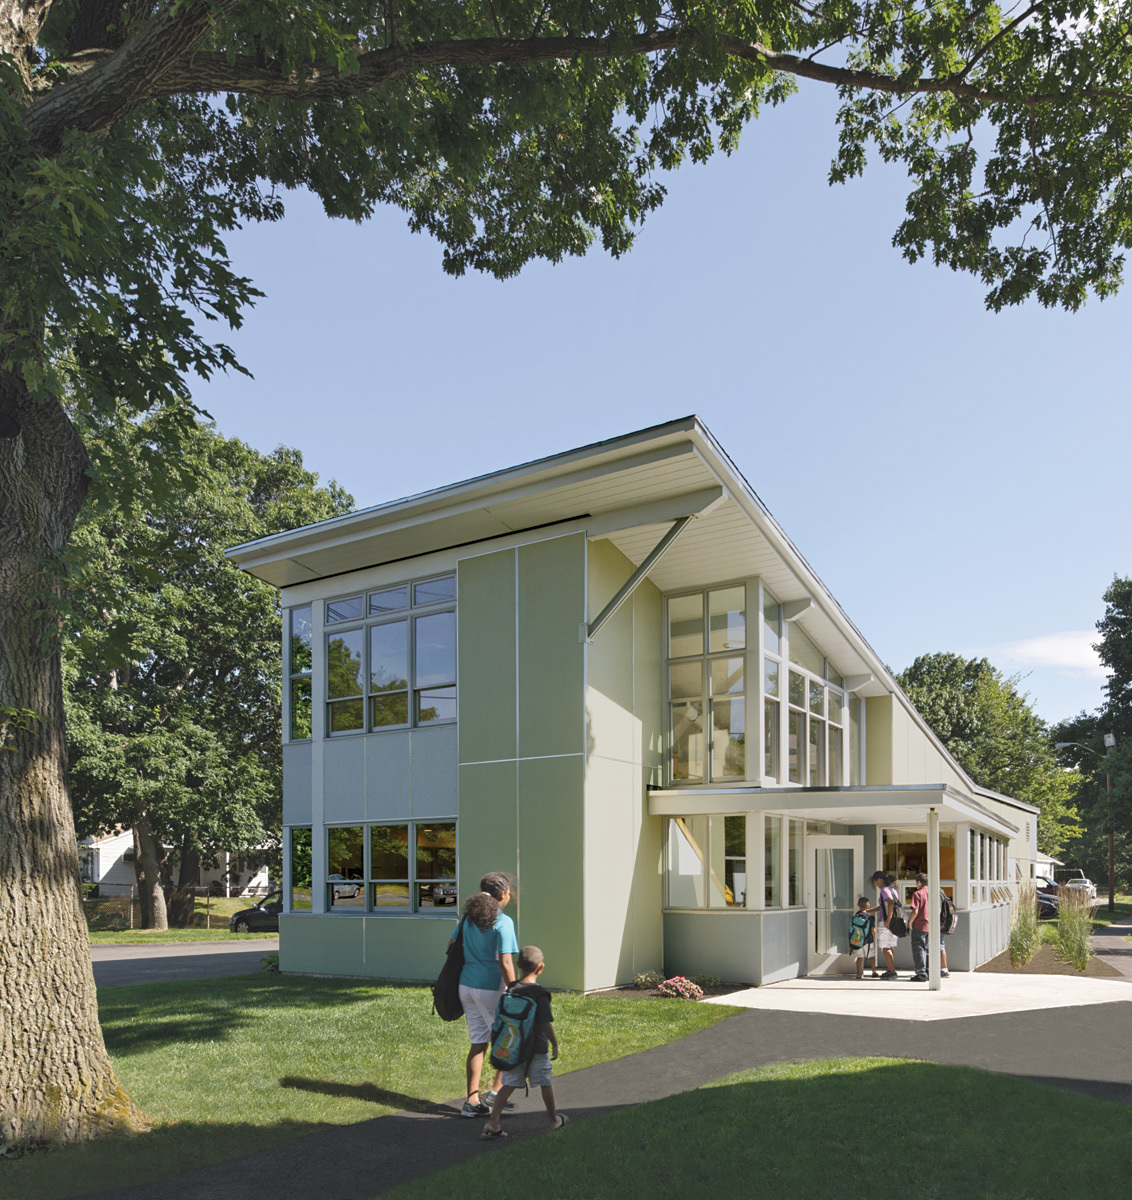 Community Learning Center; Leominster, Massachusetts by Abacus Architects + Planners (Photo: Chuck Choi)